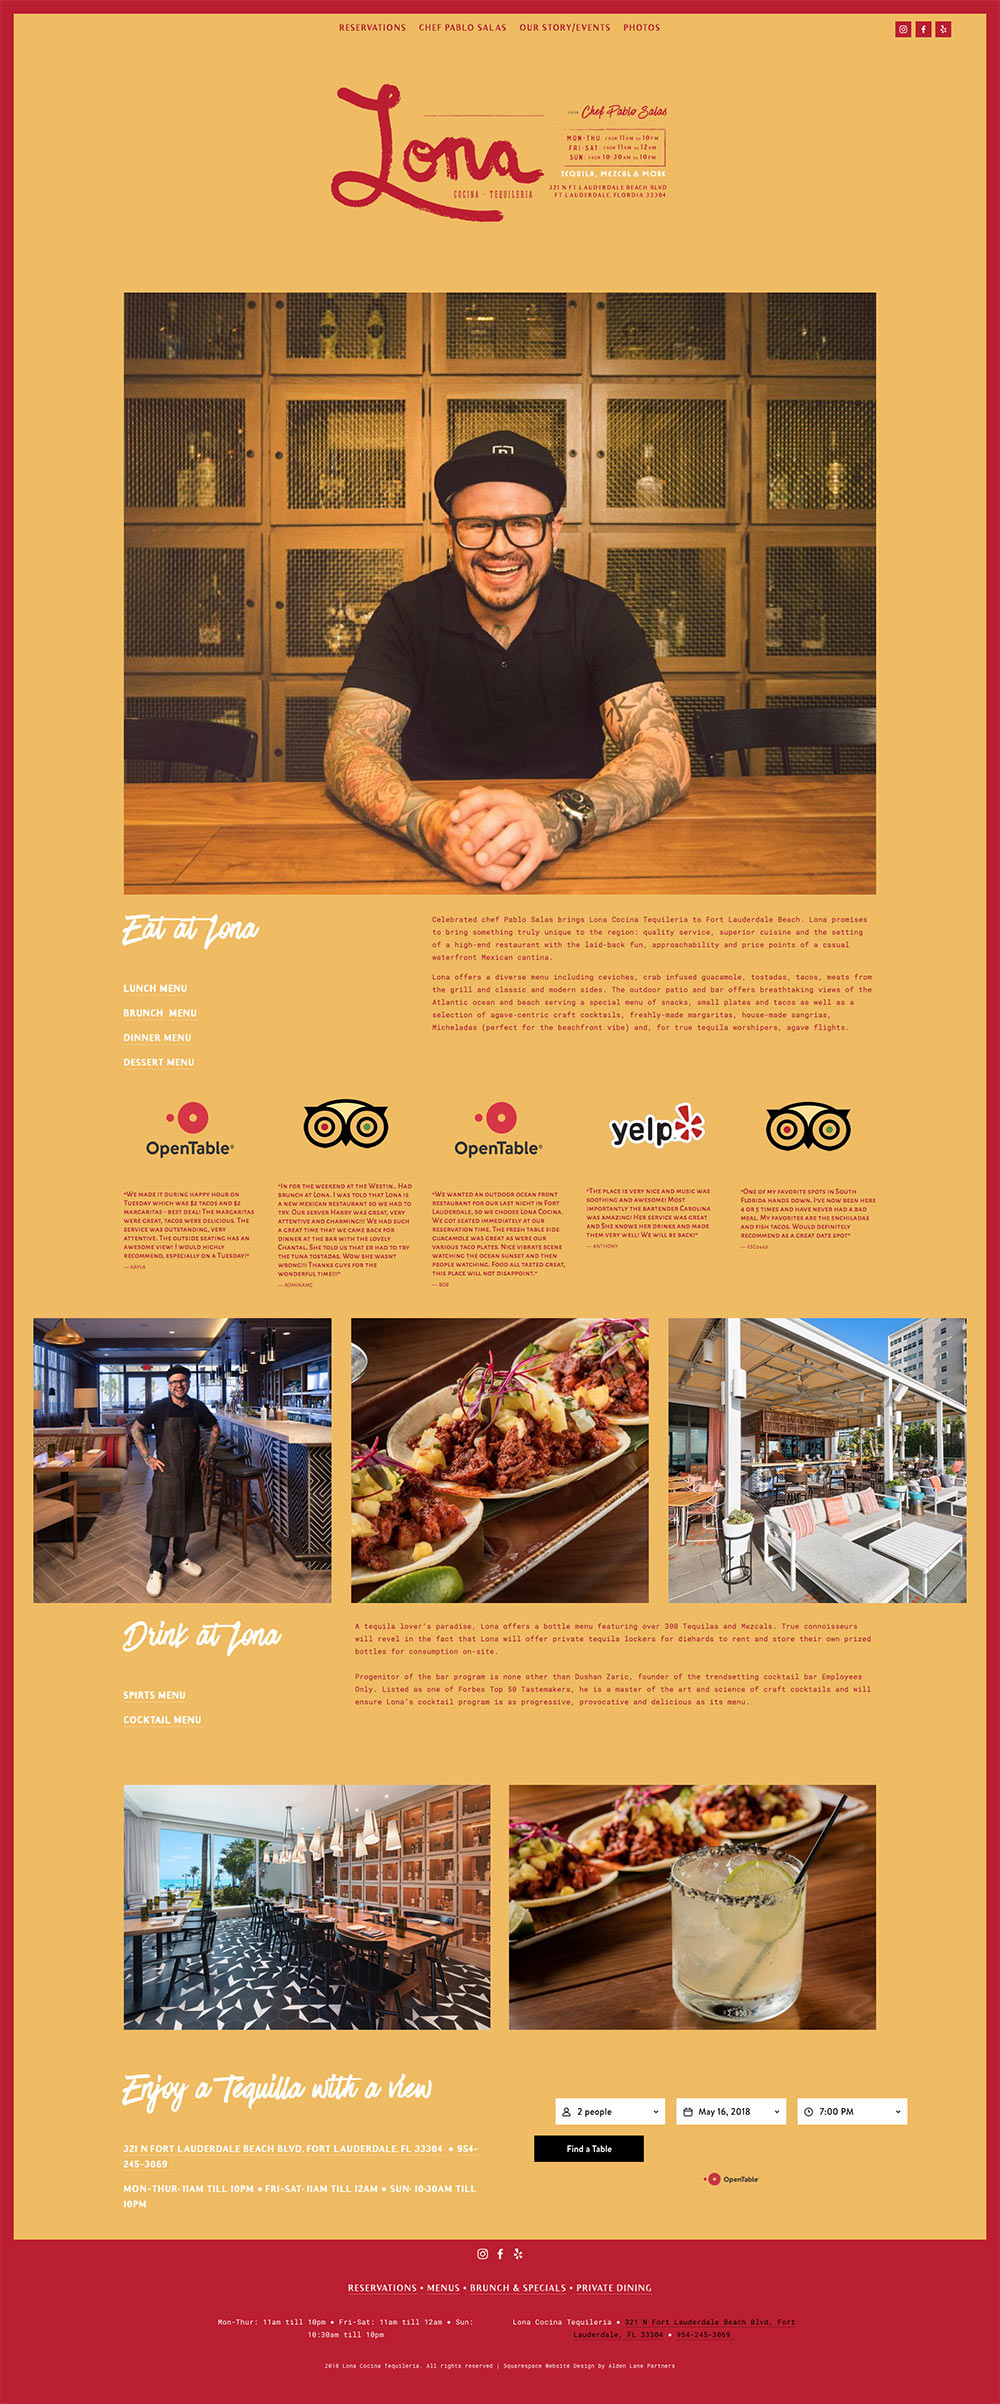 Fast and Affordable Restaurant Website Design and Development in Squarespace or Wordpress